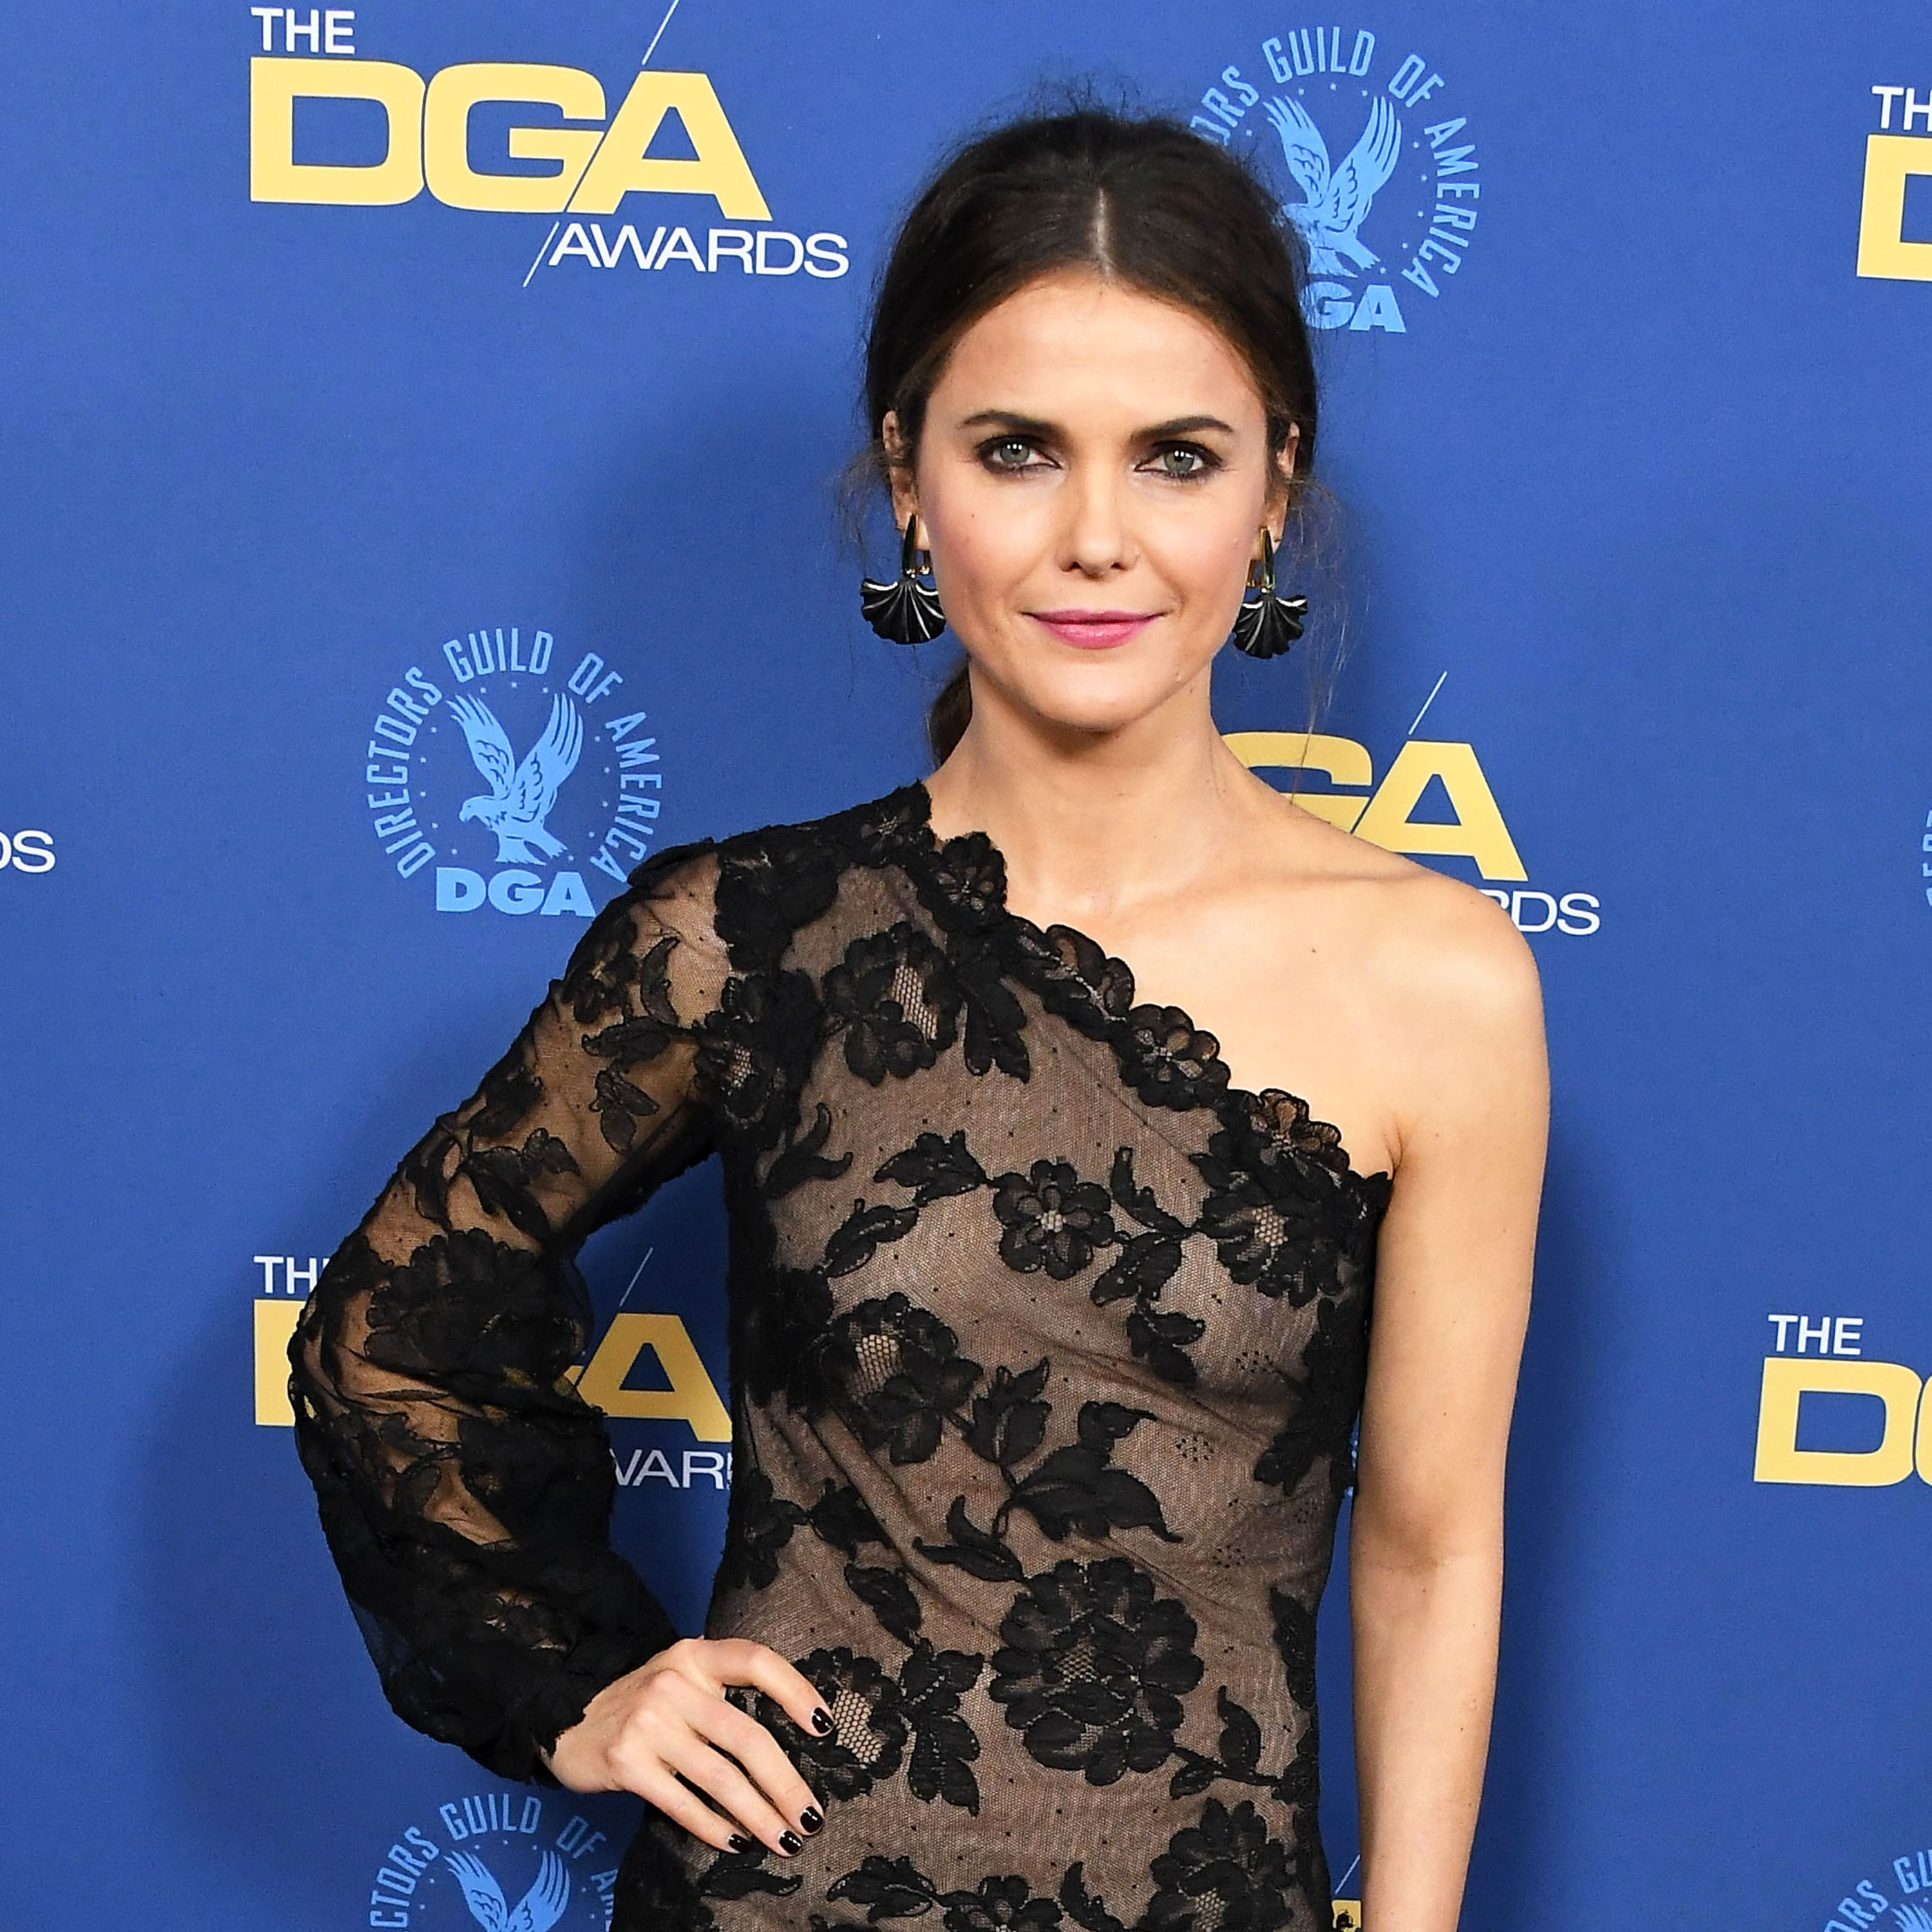 Star Wars The Rise Of Skywalker Star Keri Russell Reveals Script Made Her Cry